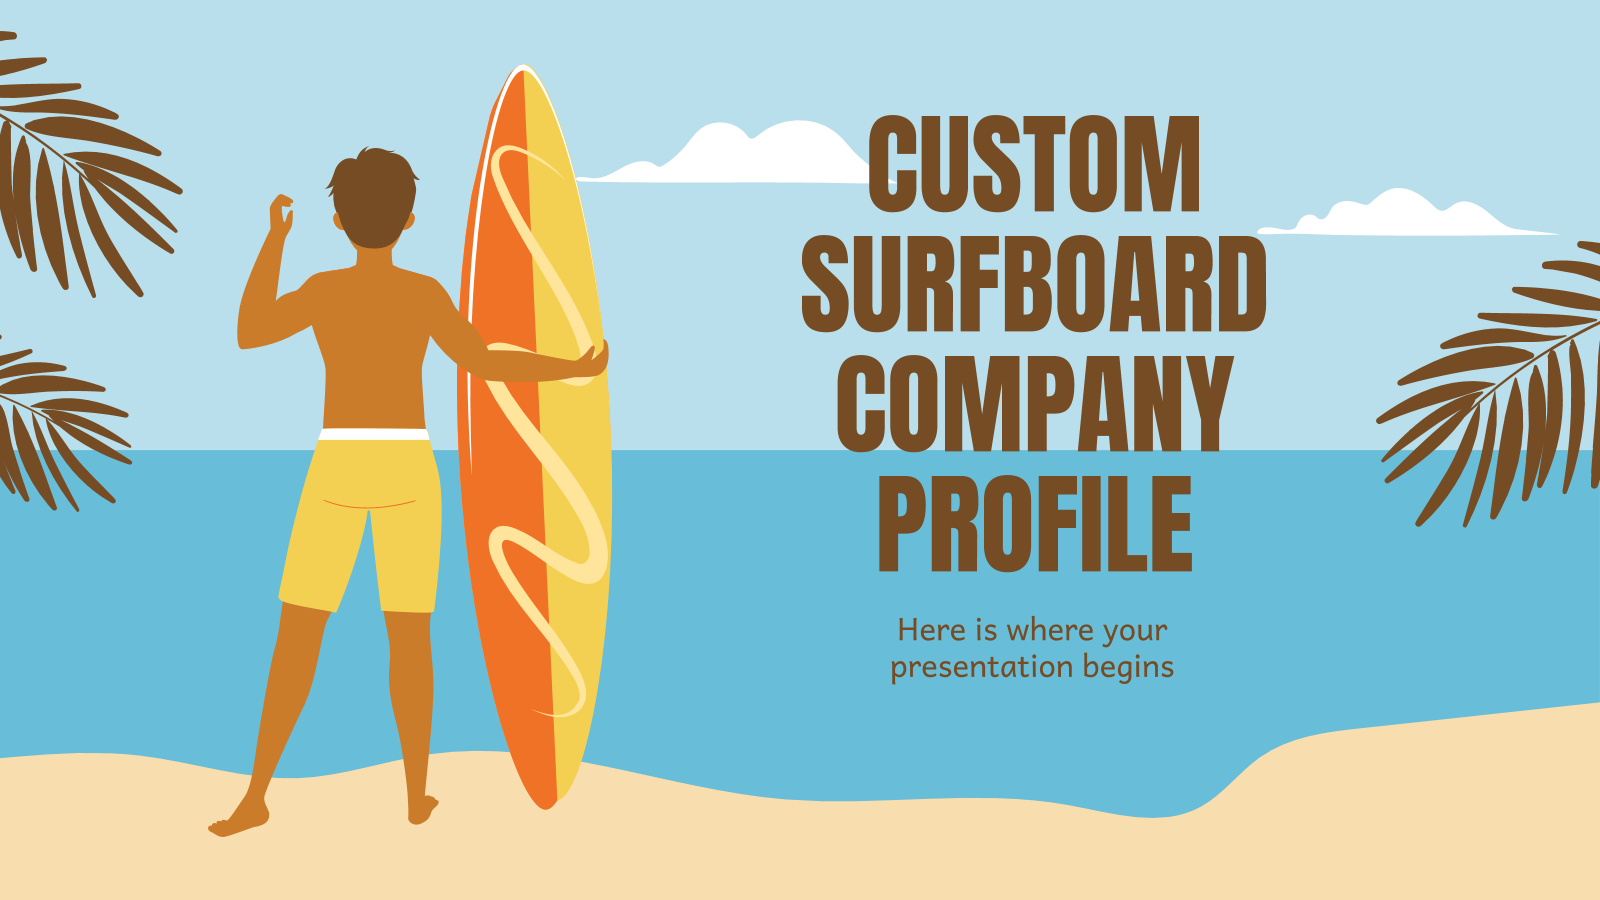 Custom Surfboard Company Profile presentation template